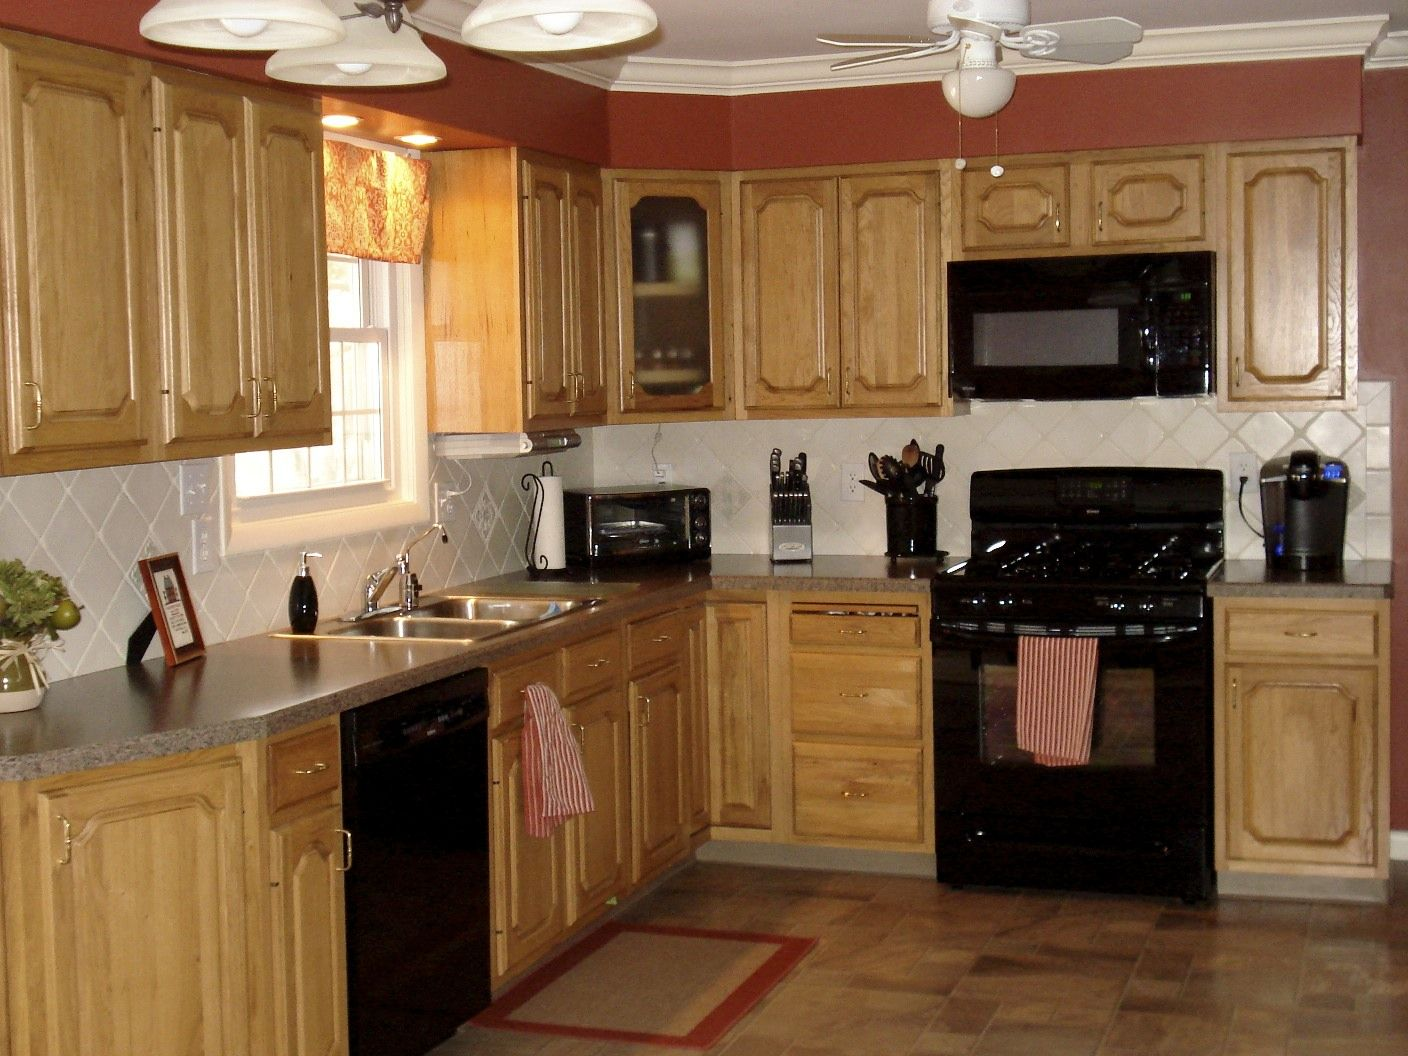 Kitchen Designs With Oak Cabinets And White Appliances Let There Be Kitchen Light Kitchens With Black